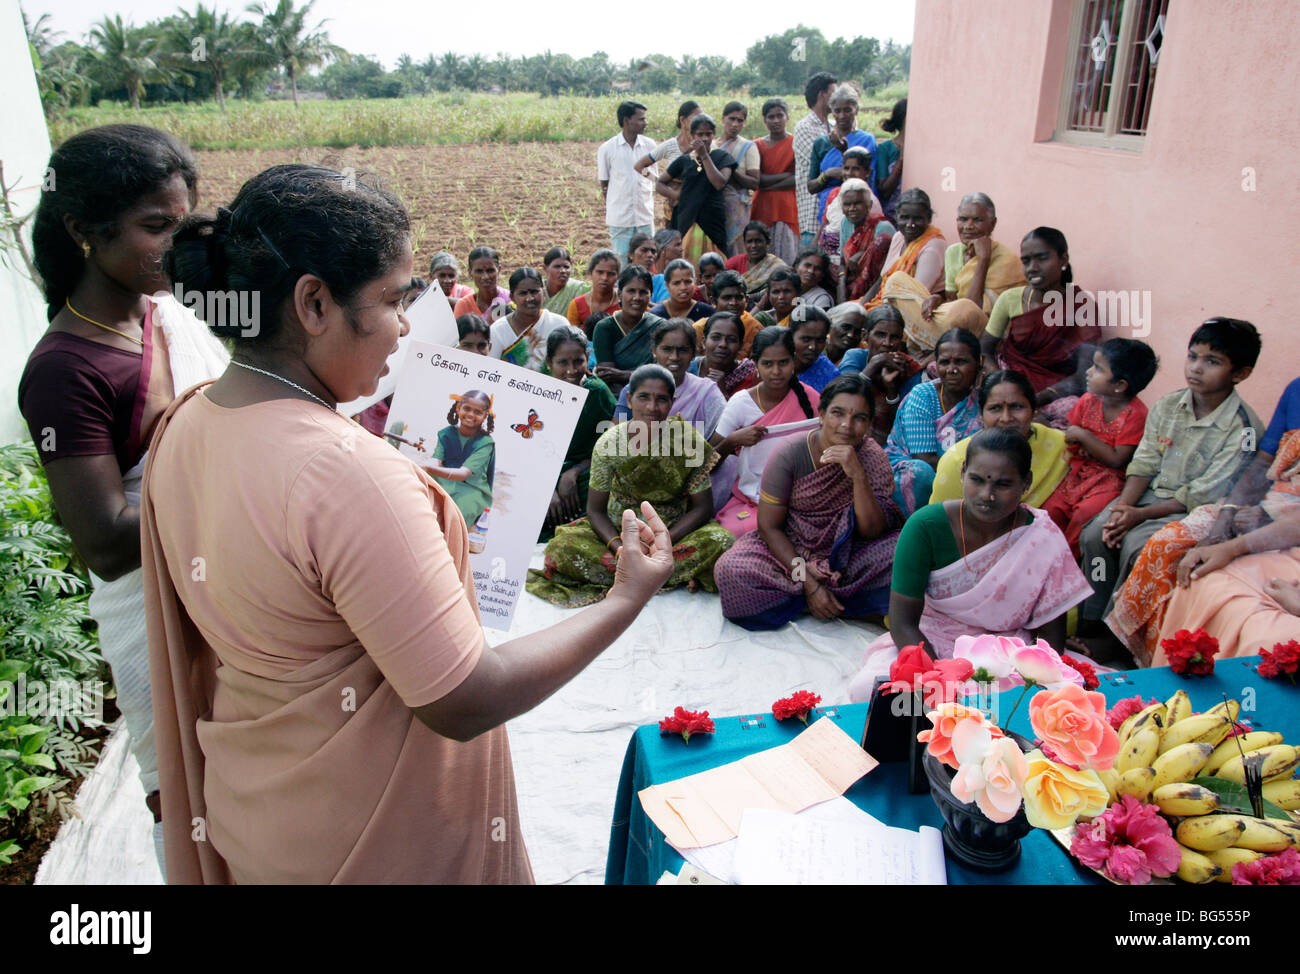 India: Health awareness program of Roman Catholic sisters in a village in Tamil Nadu State - Stock Image